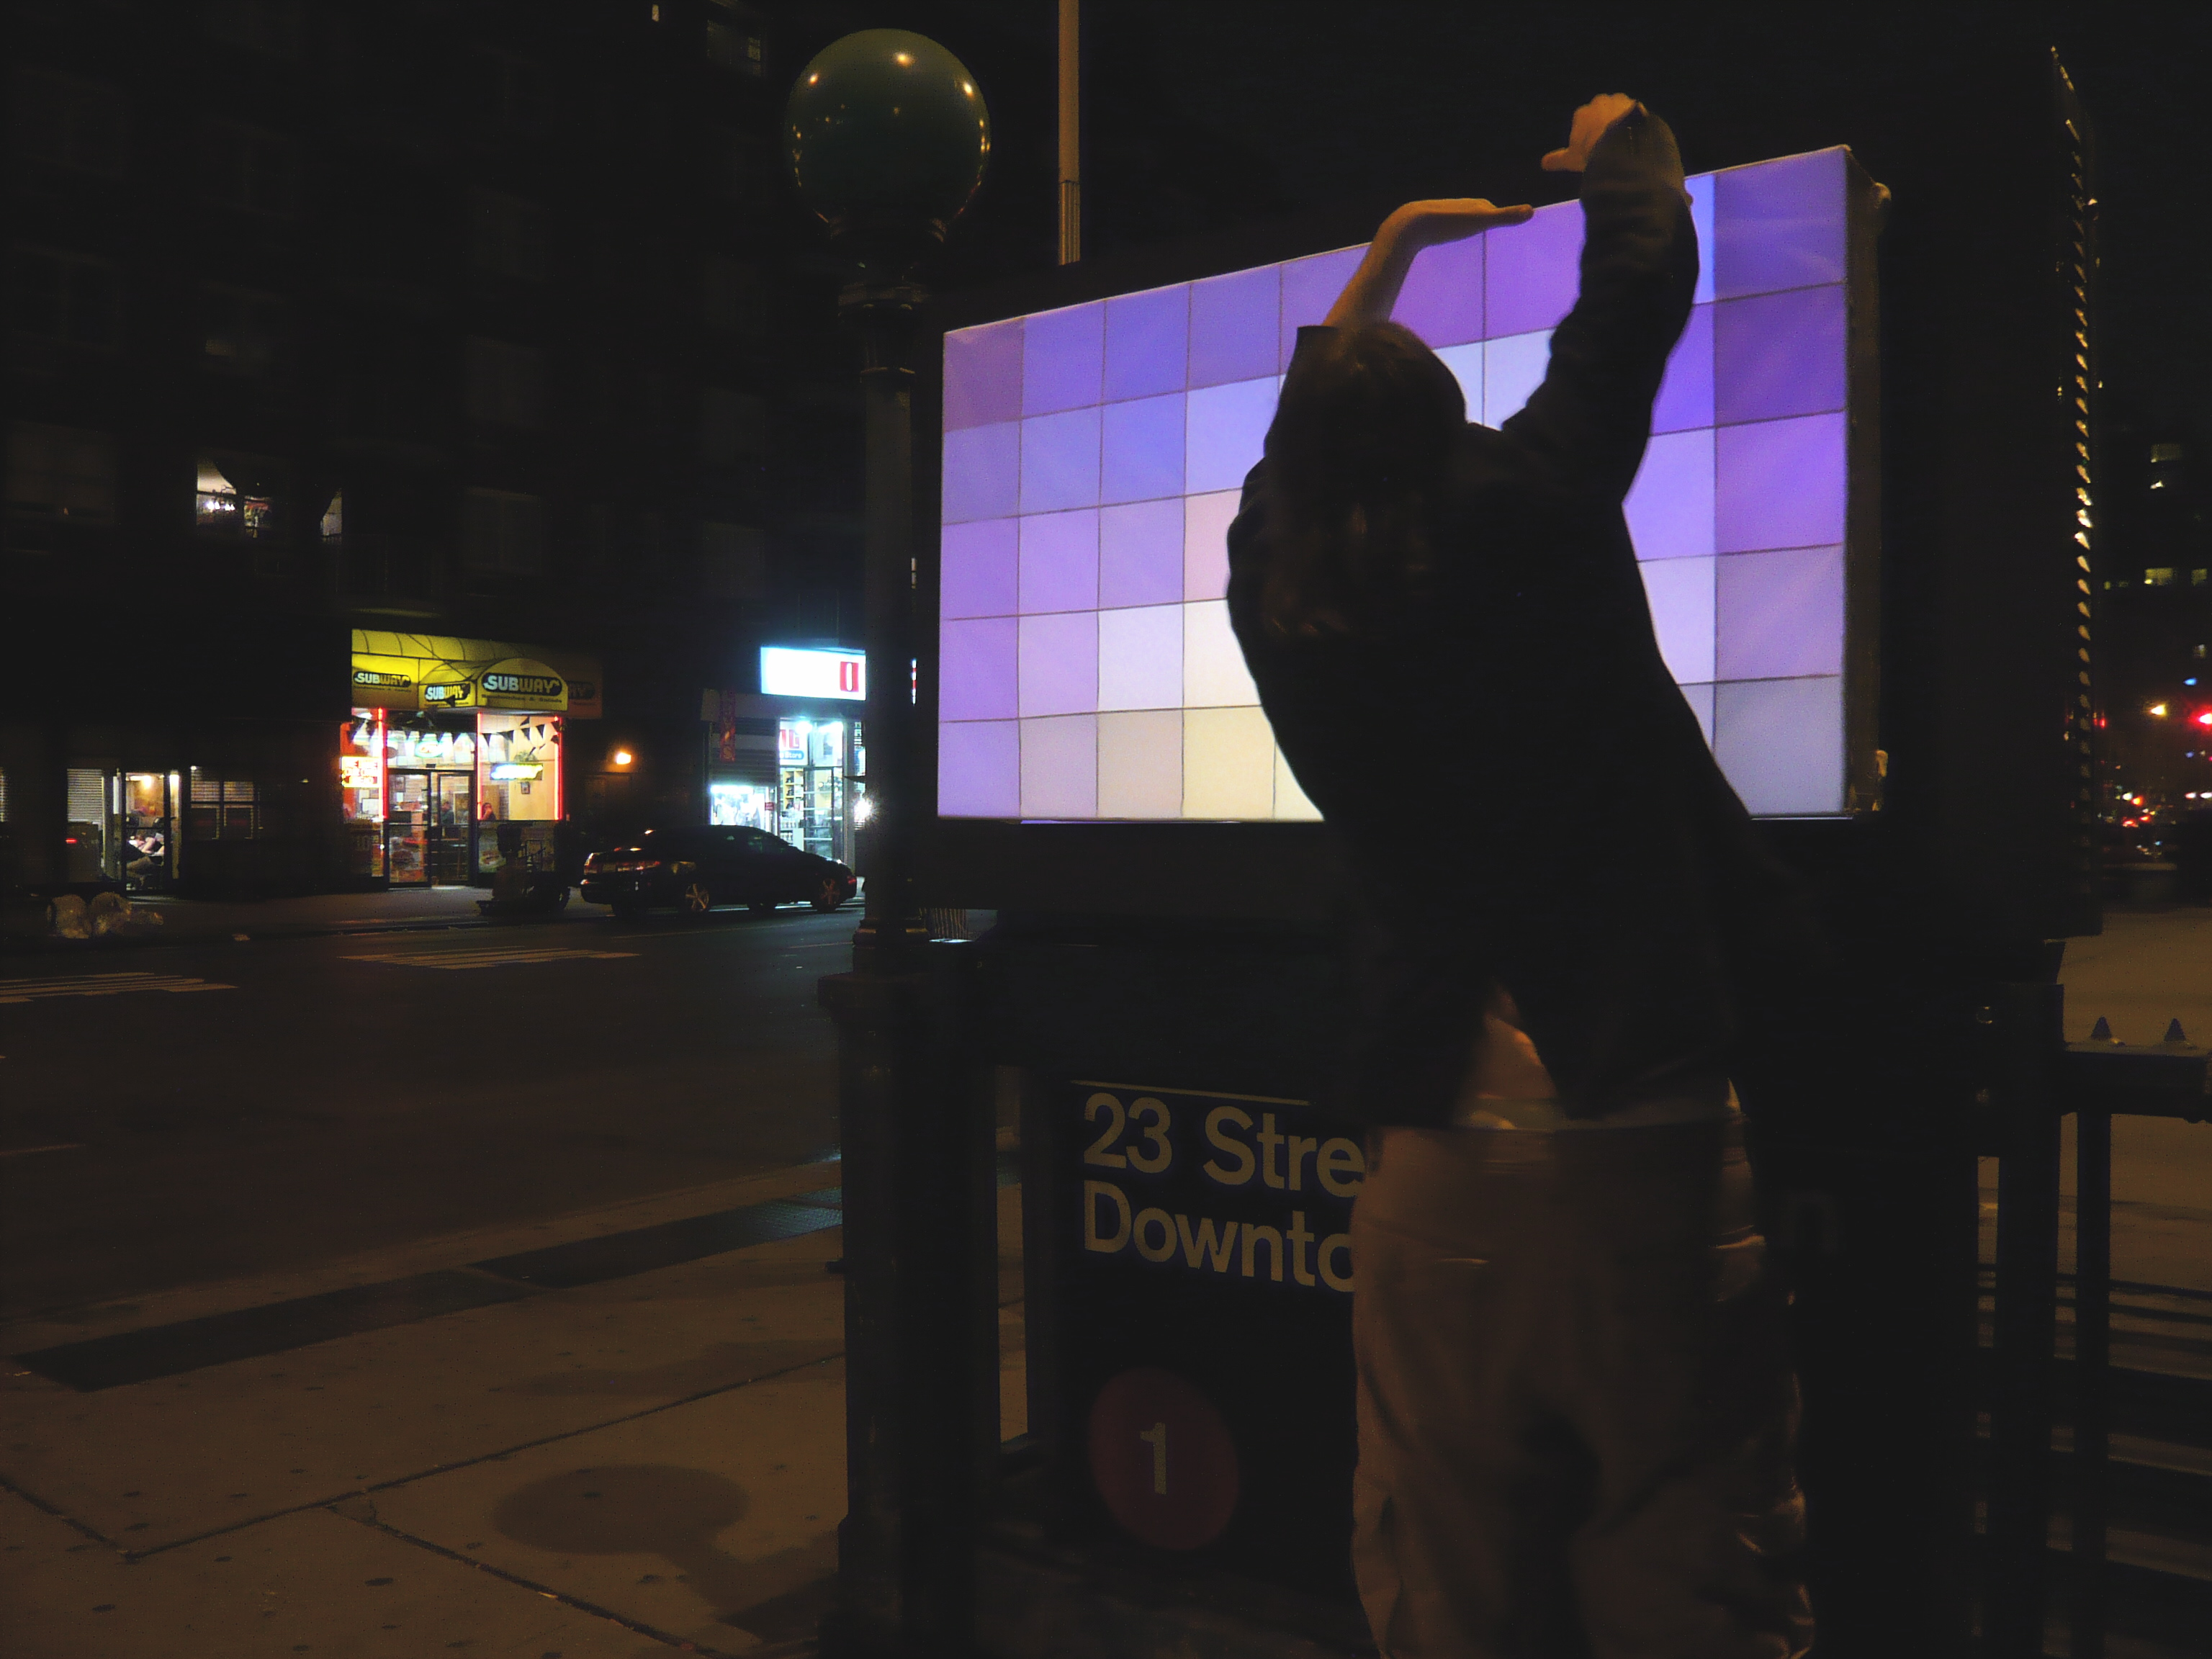 installing the pixelator